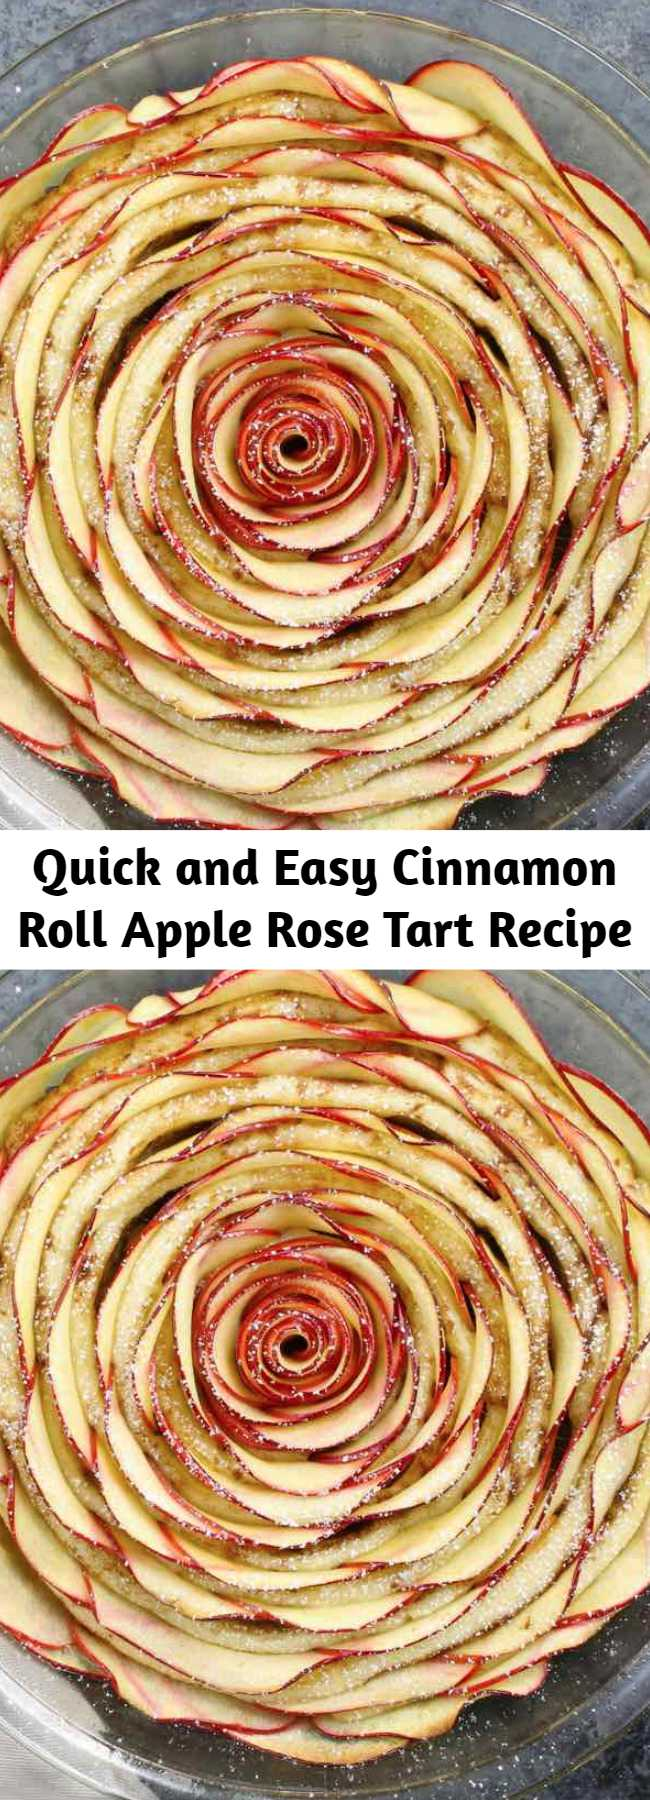 Quick and Easy Cinnamon Roll Apple Rose Tart Recipe - Wow your guests with this beautiful Cinnamon Roll Apple Rose Tart. It's so easy to make and perfect for a party! Made with fresh apples. All you need is only 5 simple ingredients: cinnamon roll dough, red apples, lemon juice, brown sugar and butter. So beautiful! Quick and easy recipe.